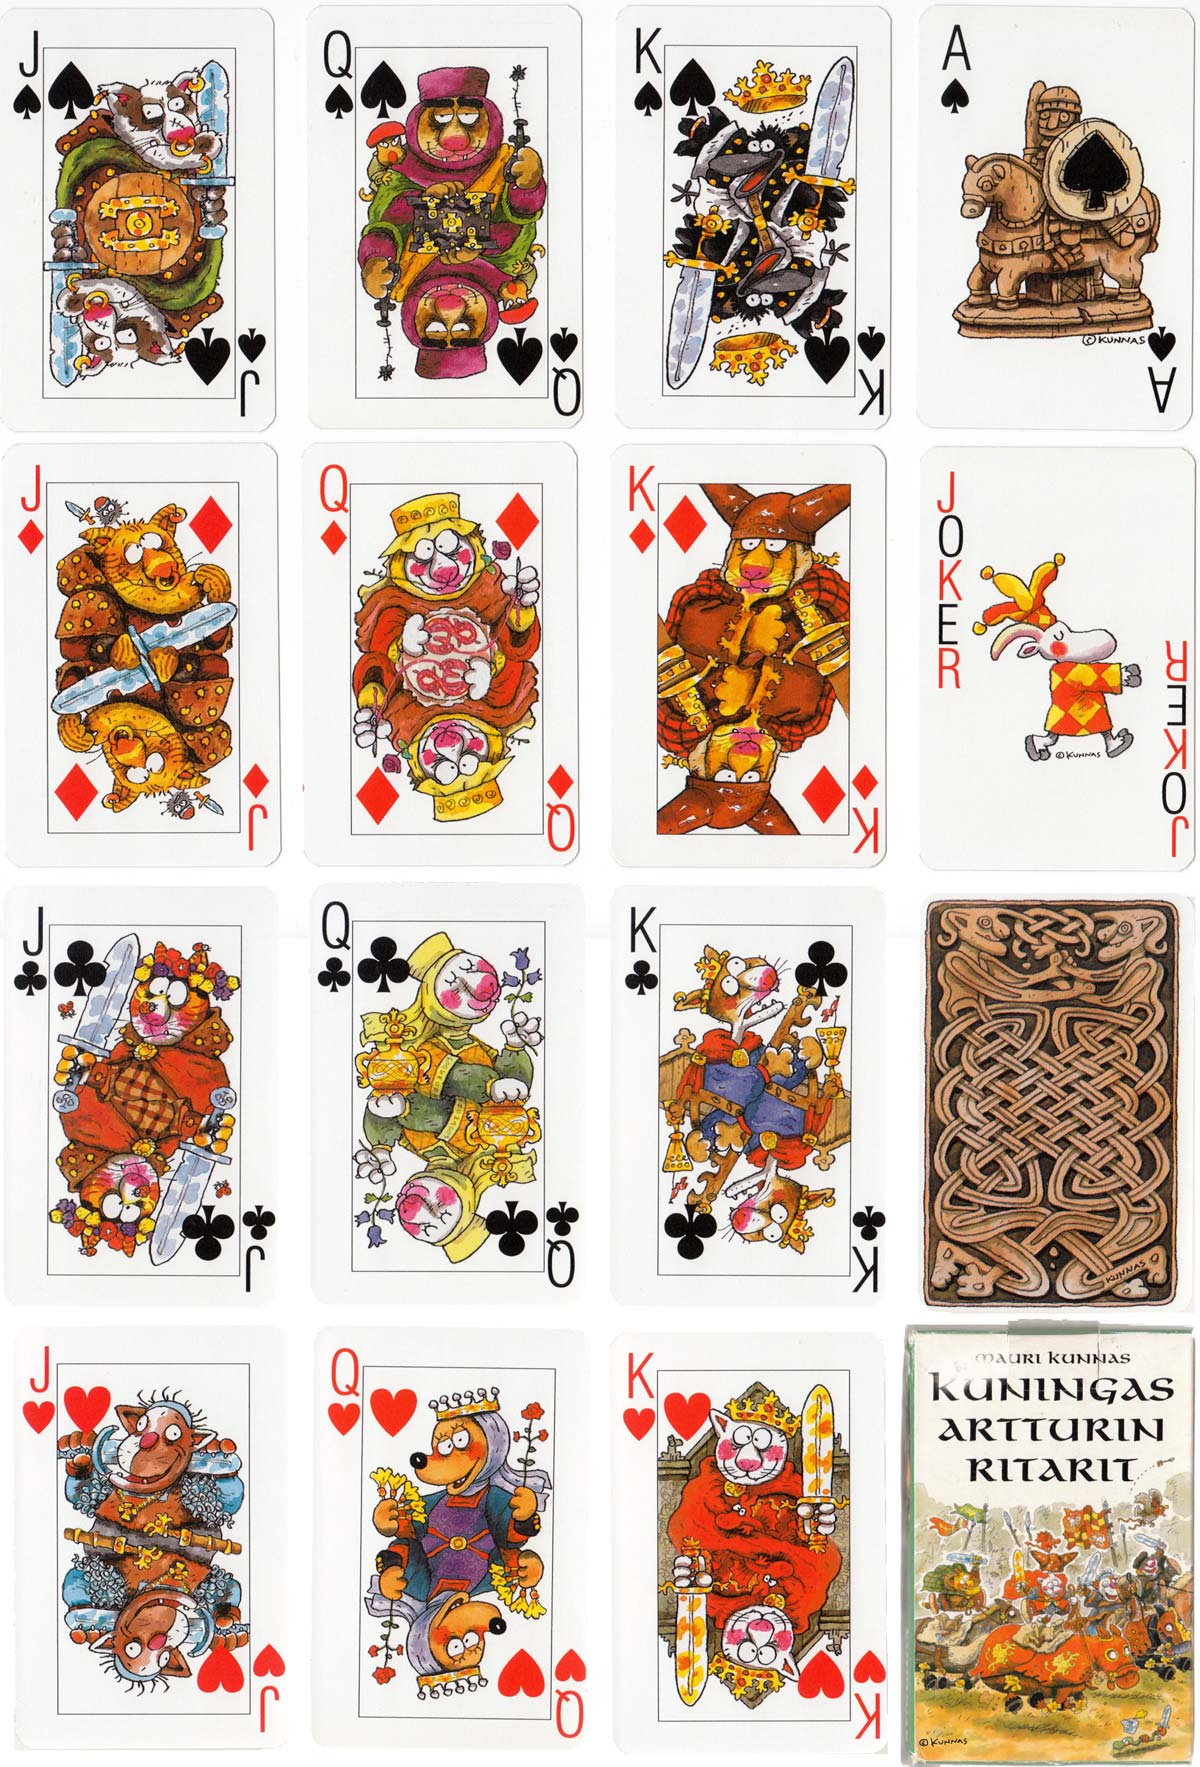 """Kuningas Artturin Ritarit"" (King Arthur's Knights) playing cards designed by Mauri Kunnas"